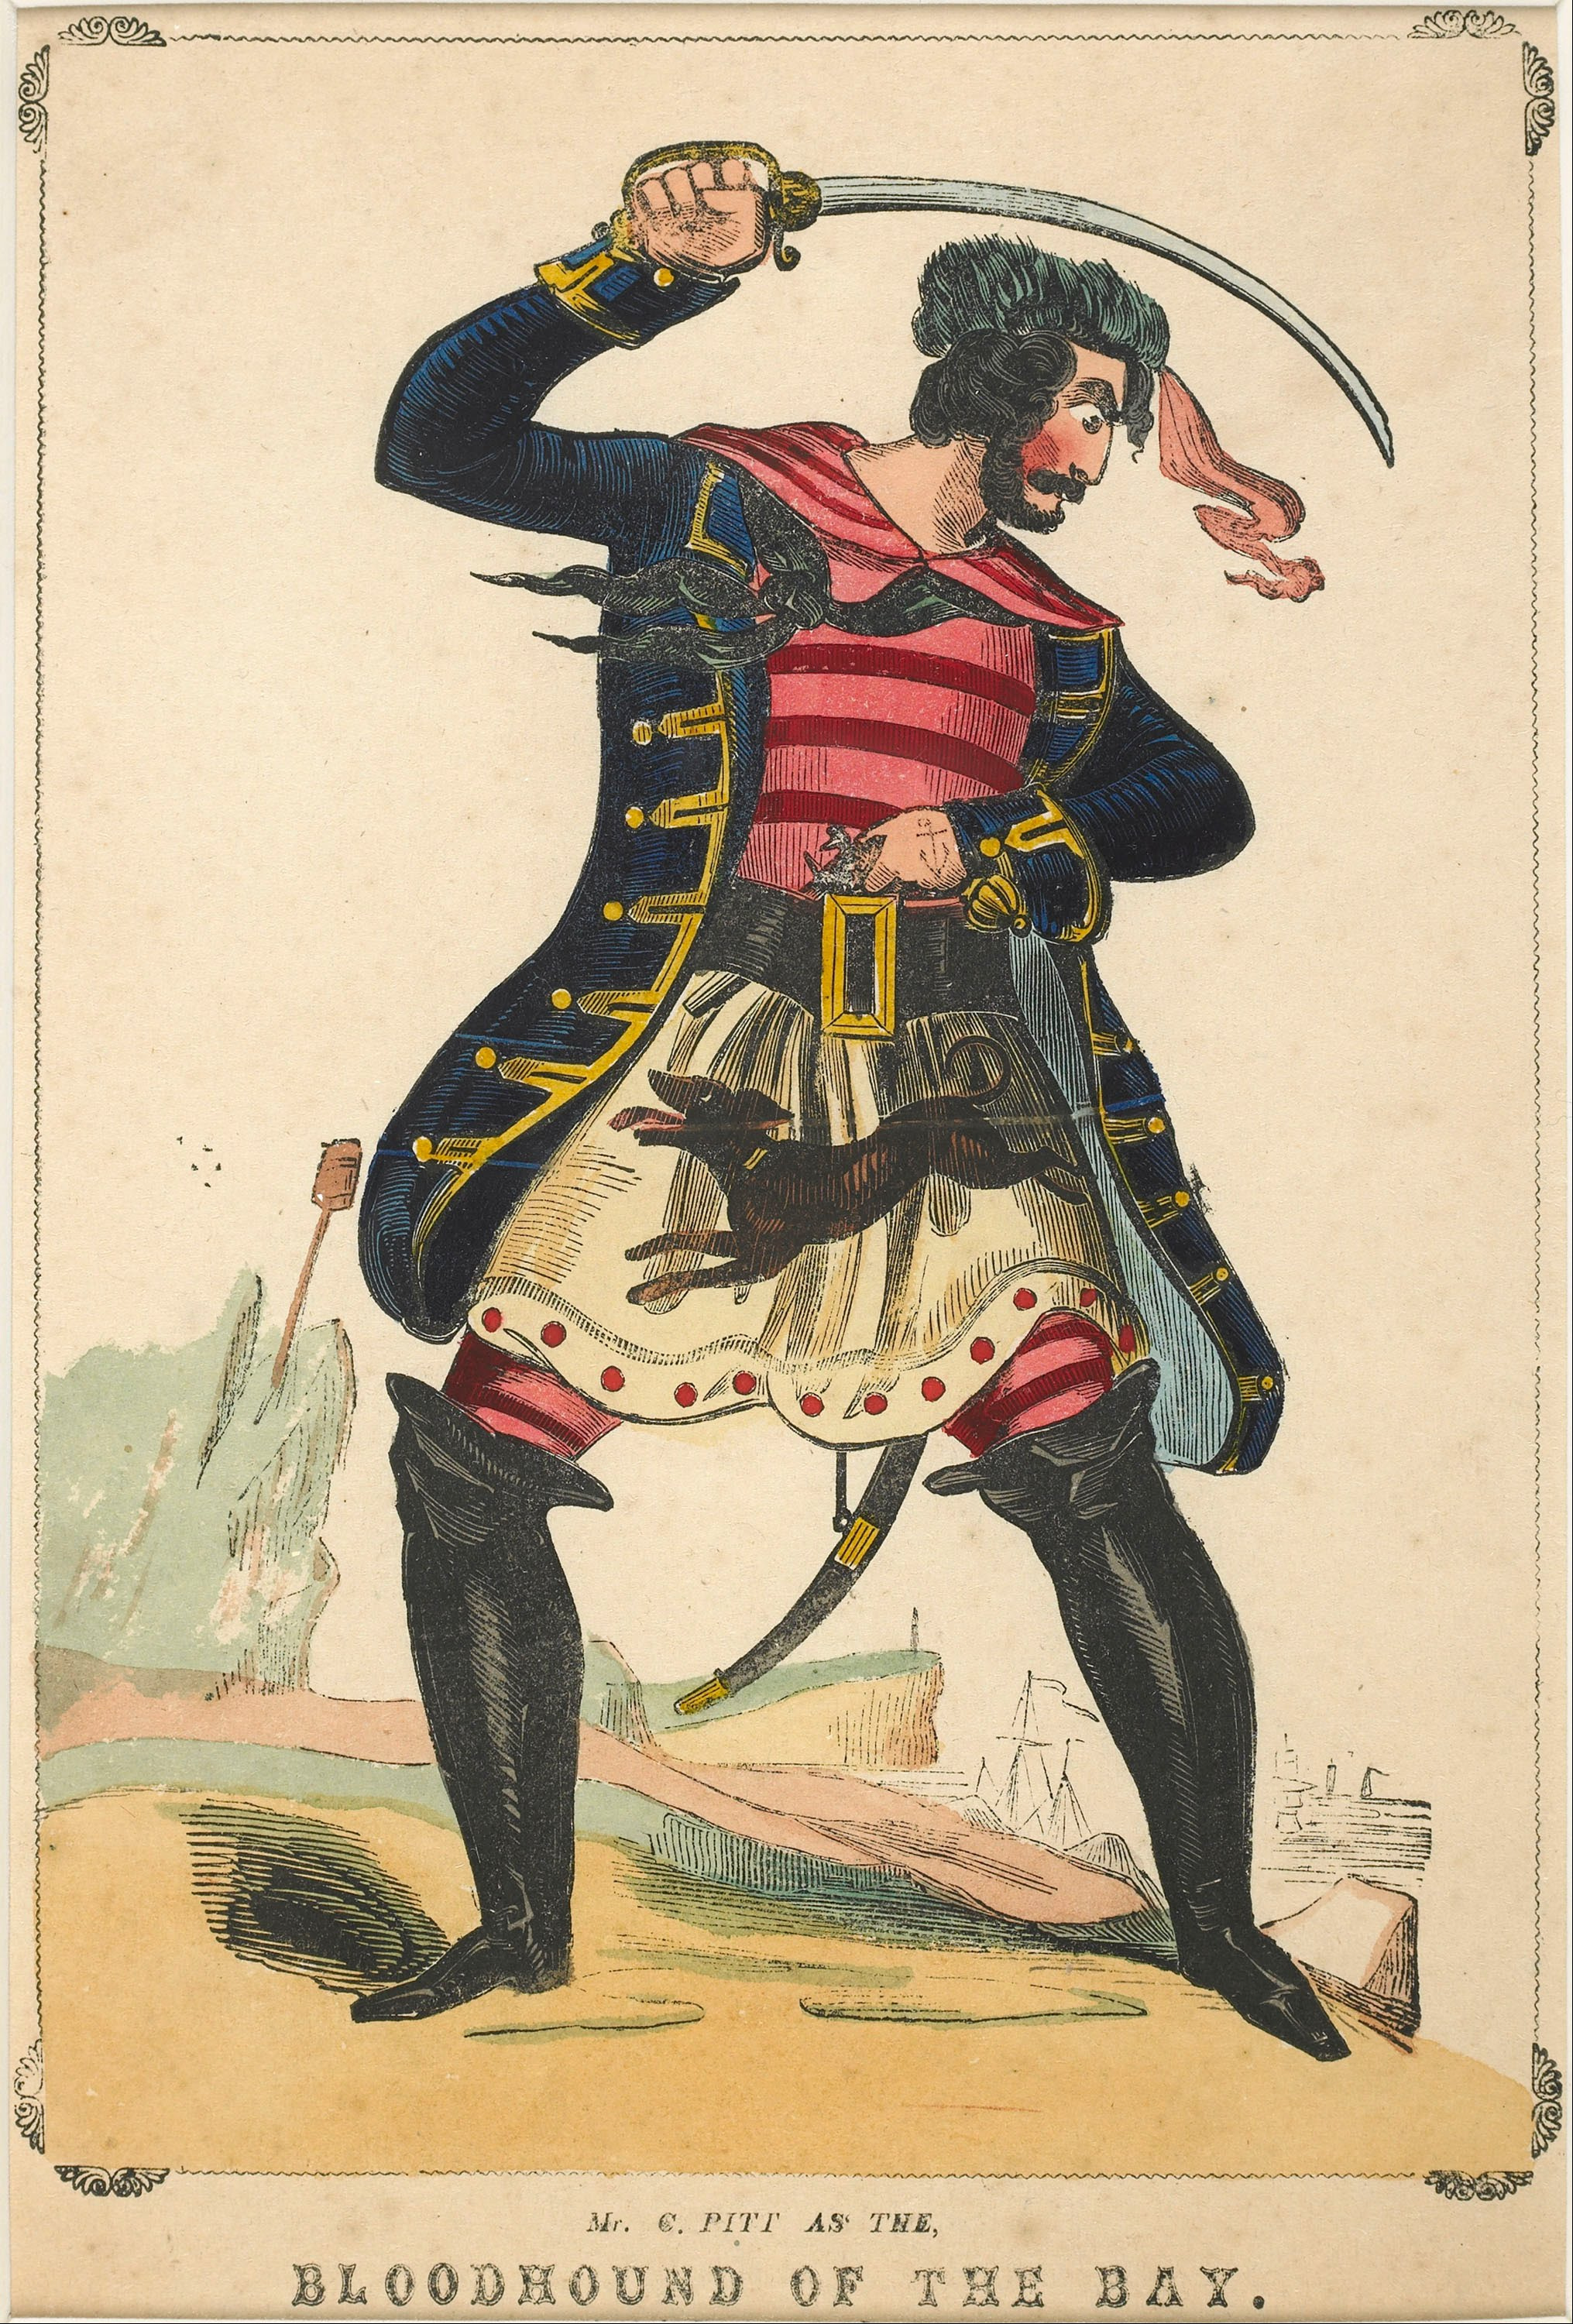 """Mr C. Pitt as the Bloodhound of the Bay"", a portrait of a pirate in the Museum of London."